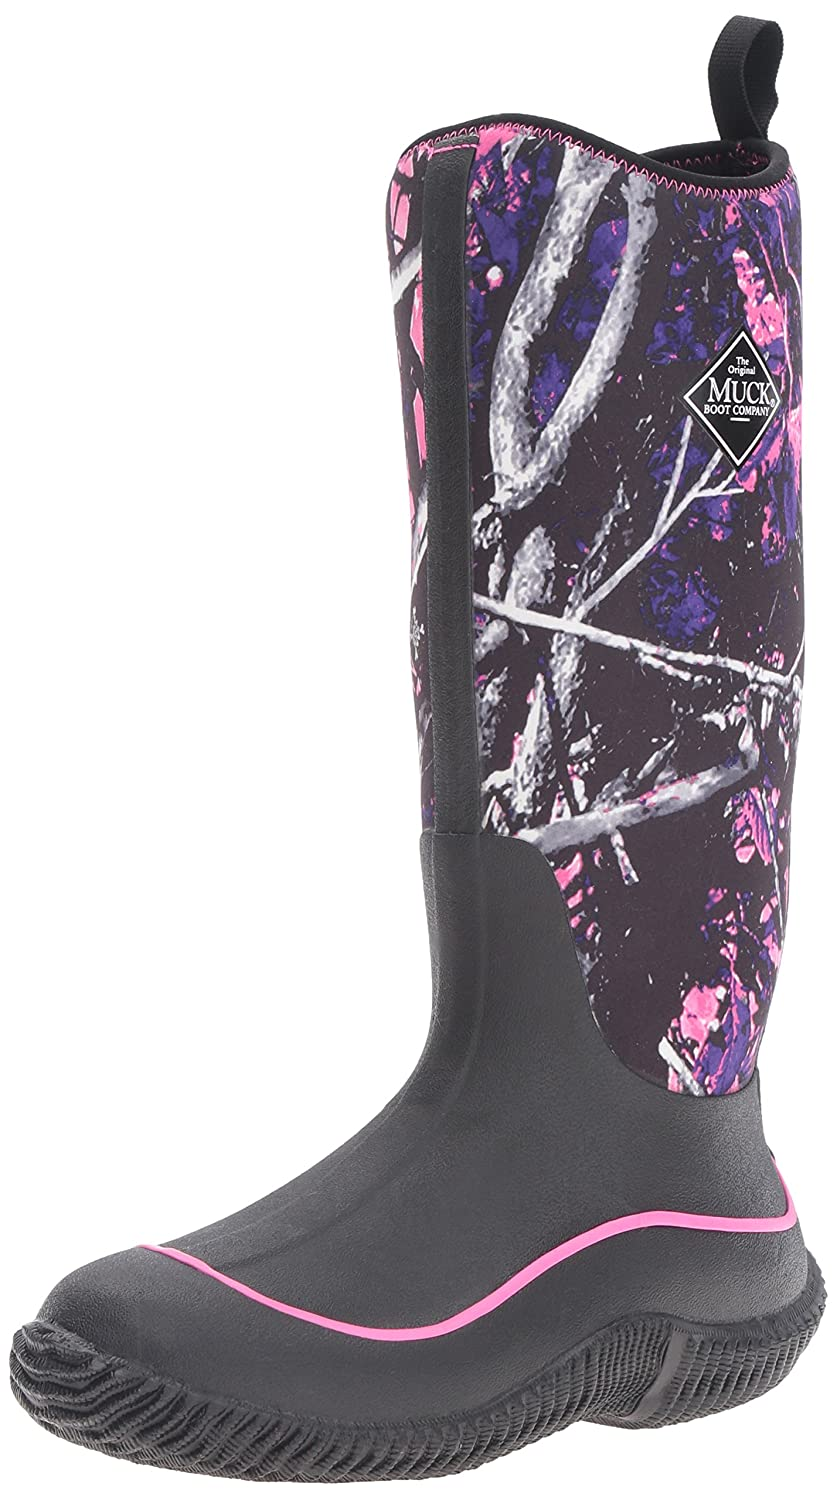 MuckBoots Women's Hale Plaid Boot B01GK9581K 10 B(M) US|Black/Muddy Girl Camo